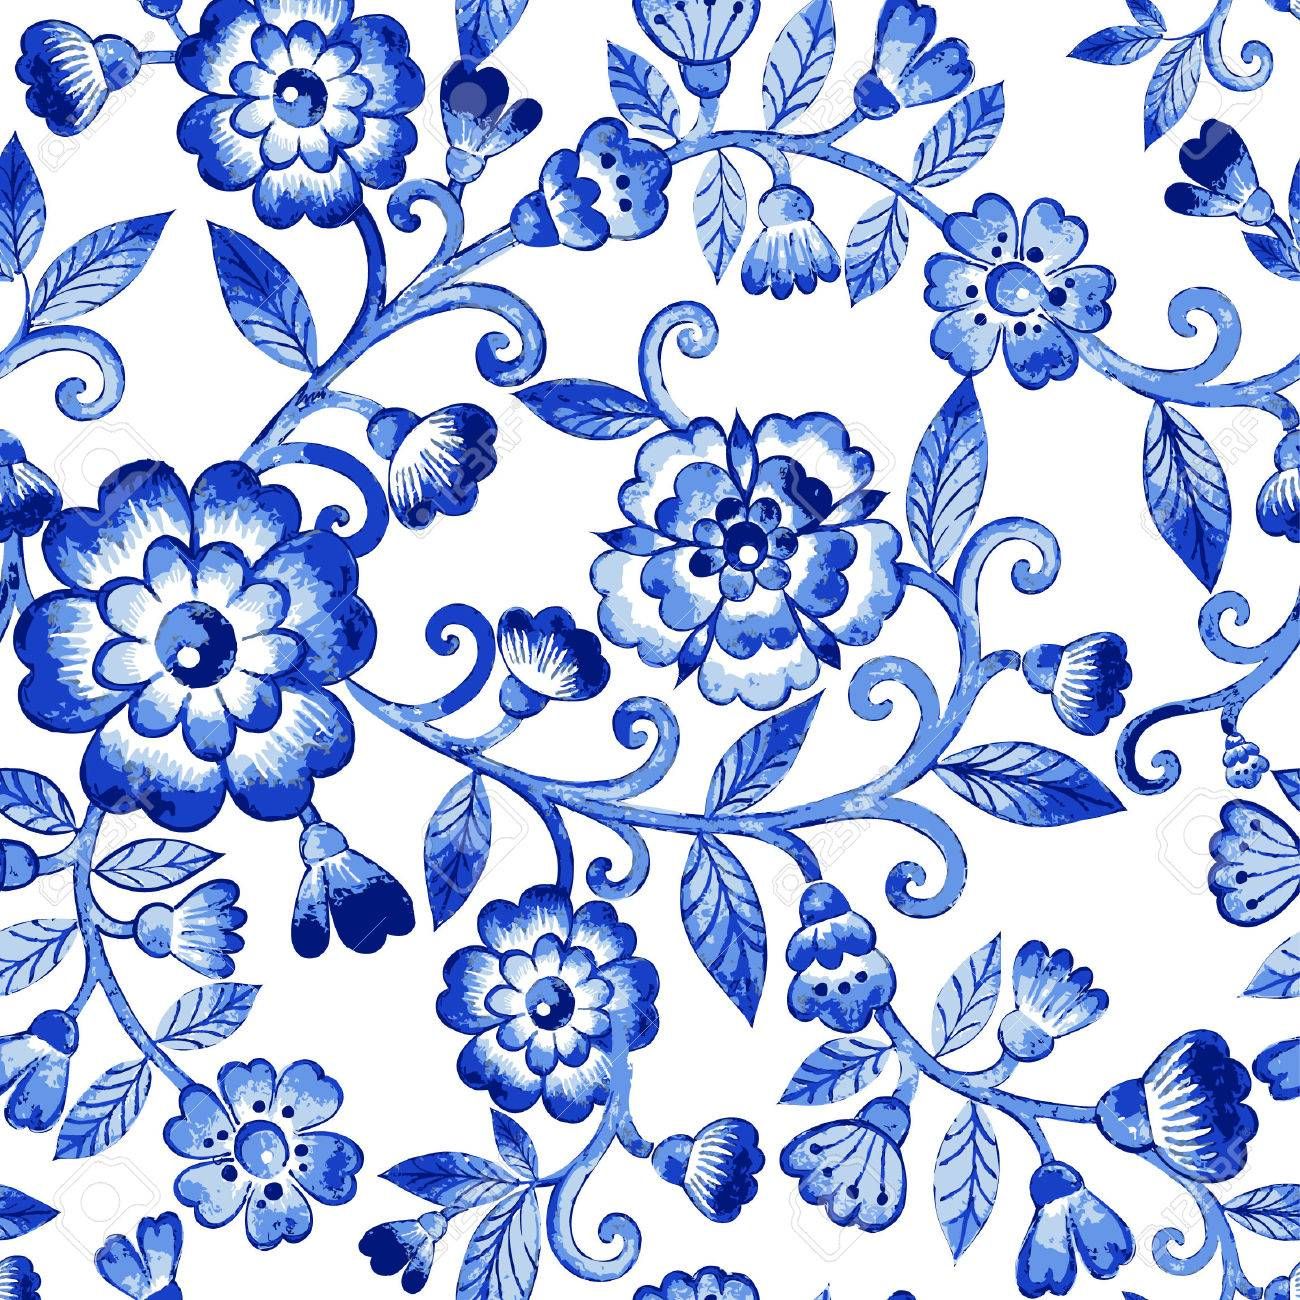 Watercolor Floral PatternBlue Flowers PatternSeamless Pattern Can Be Used For Wallpaperpattern Fillsweb Page Backgroundsurface Textures